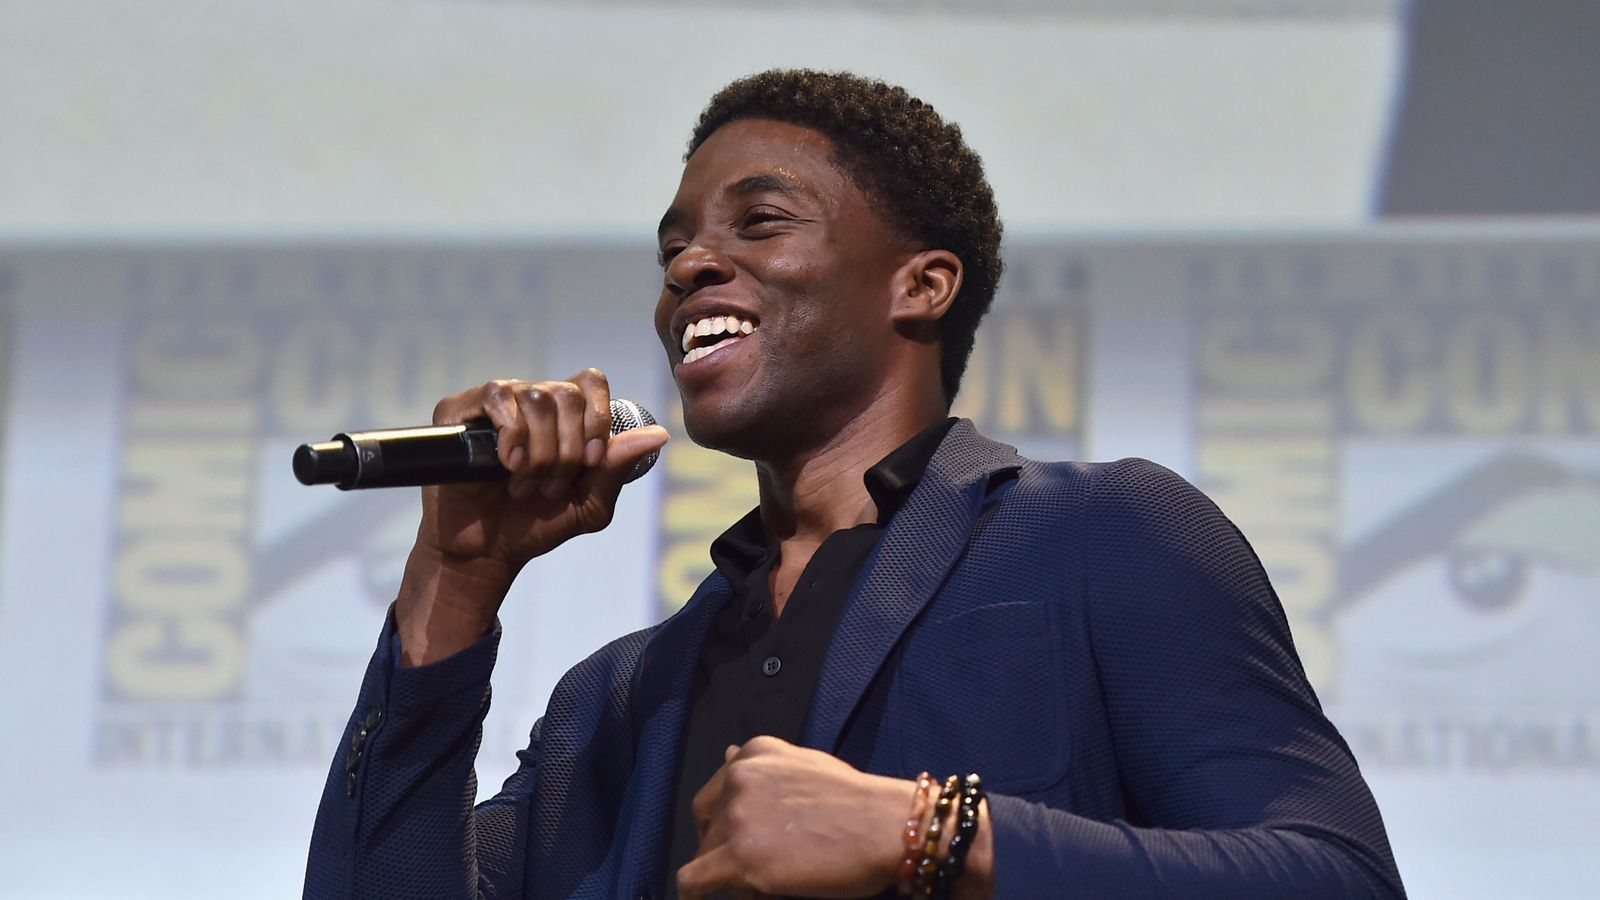 Black Panther gets a standing ovation in Hall H